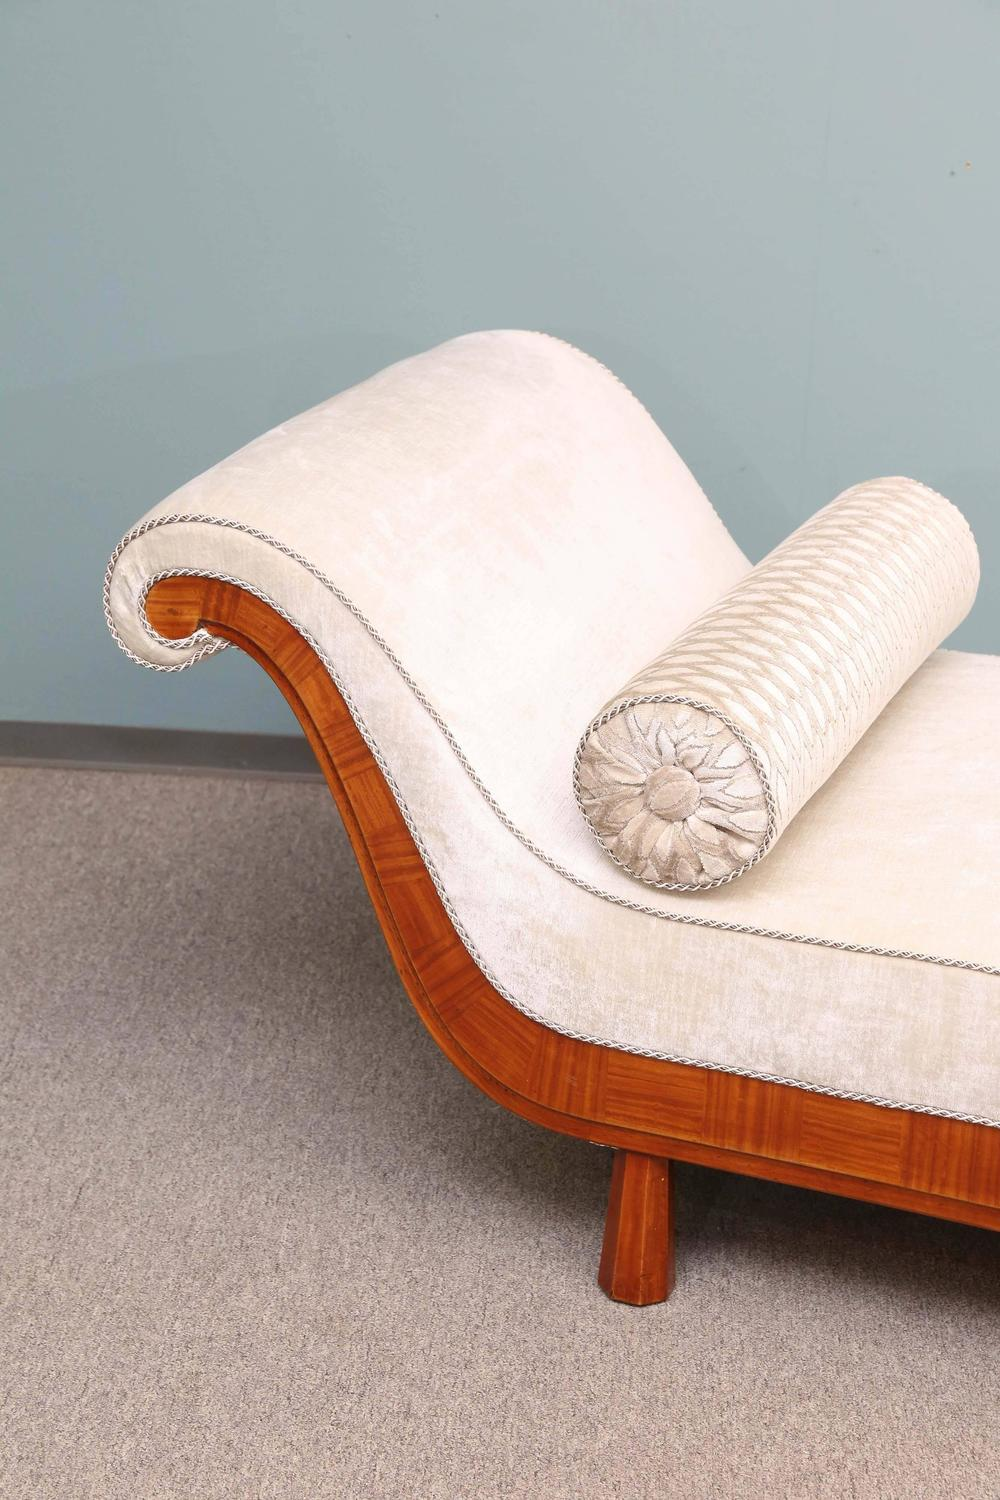 french art deco period recamier chaise longue circa 1920 1930 at 1stdibs. Black Bedroom Furniture Sets. Home Design Ideas